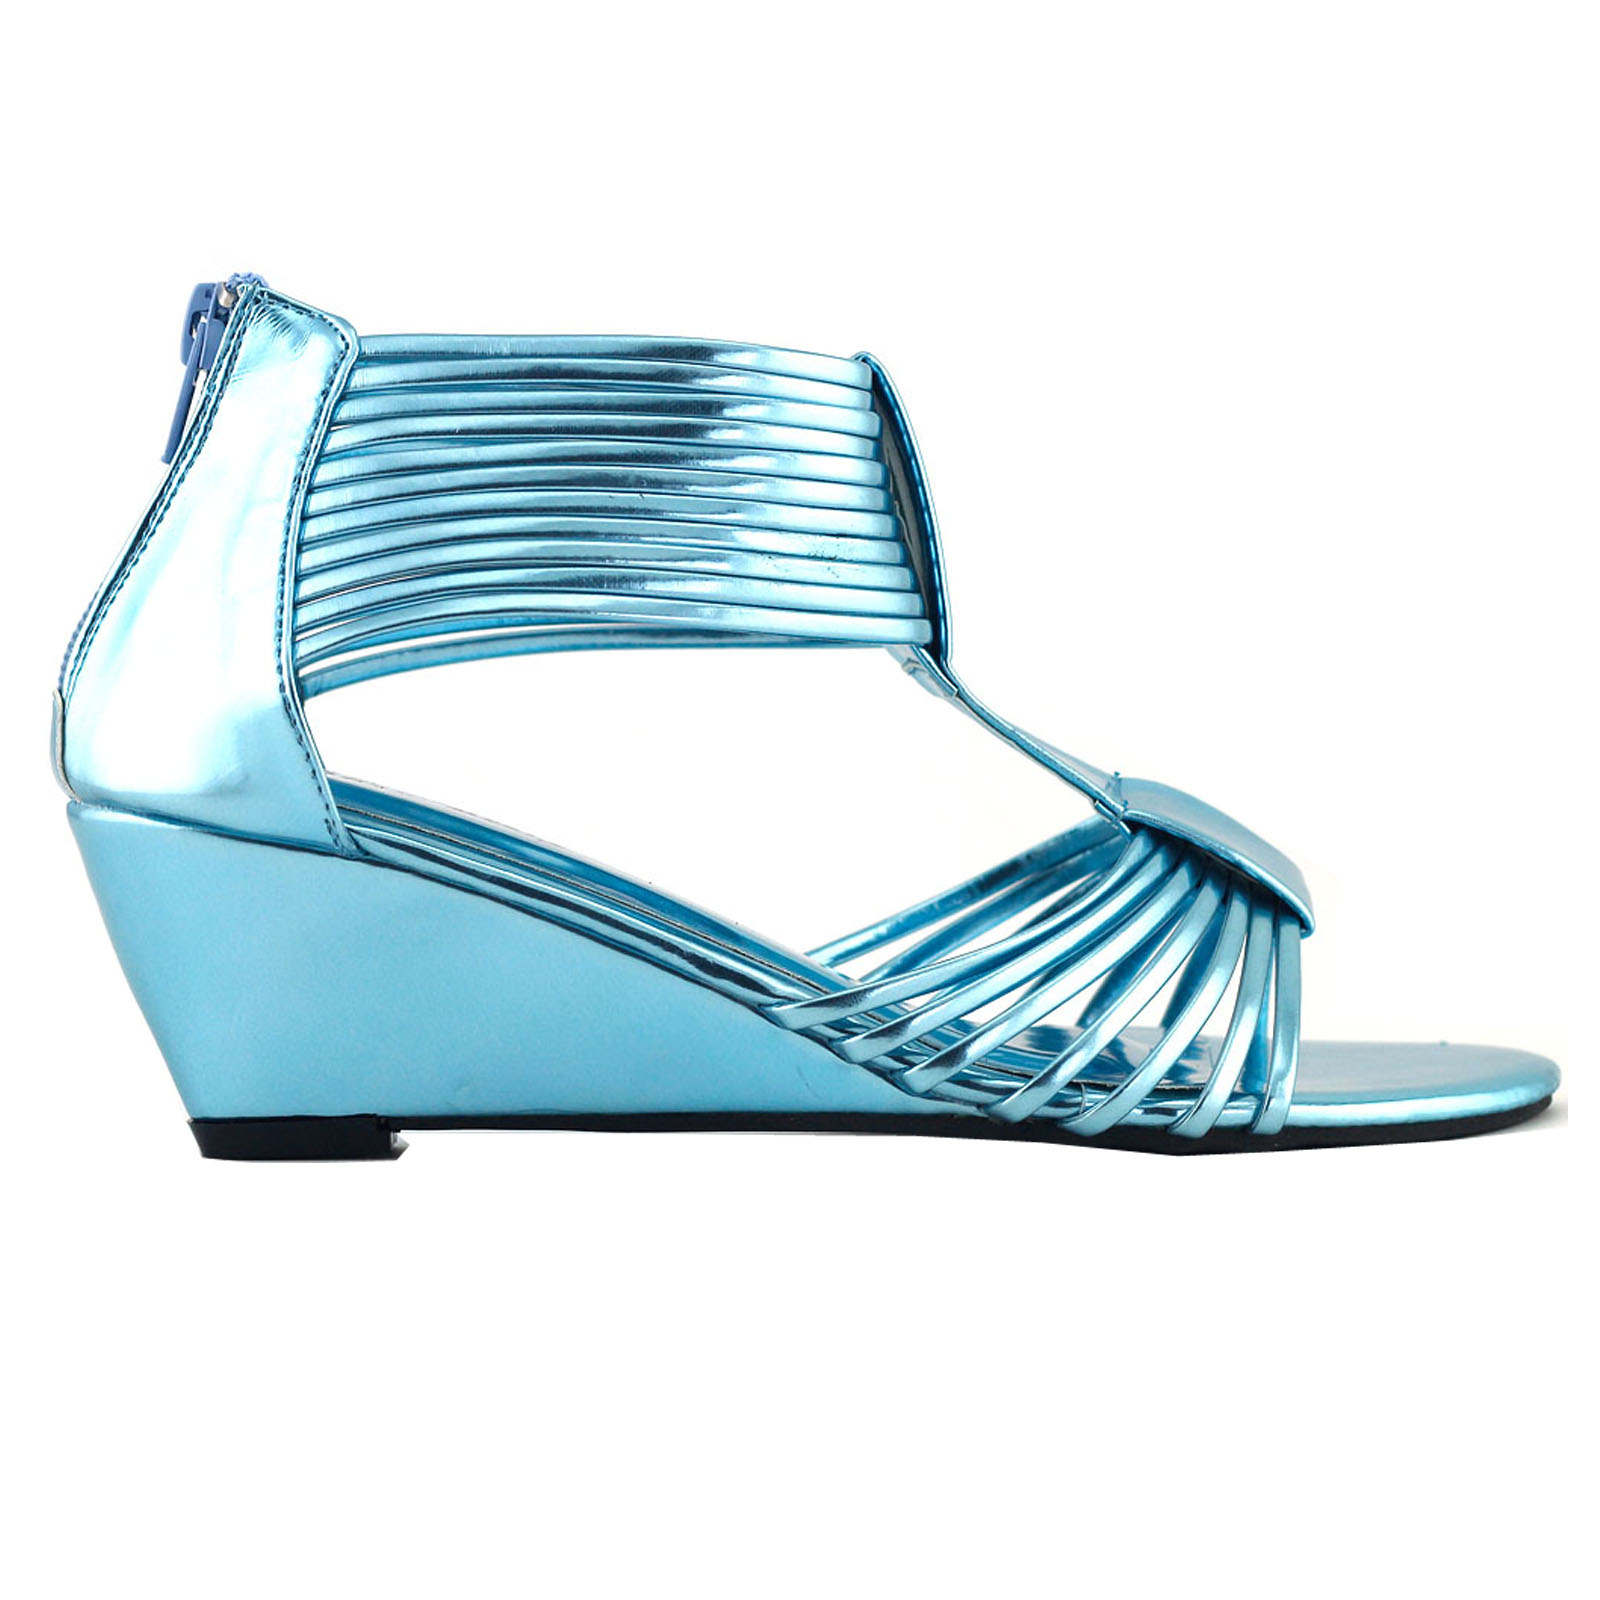 light blue new womens strappy party gladiator wedge low heel sandals. Black Bedroom Furniture Sets. Home Design Ideas